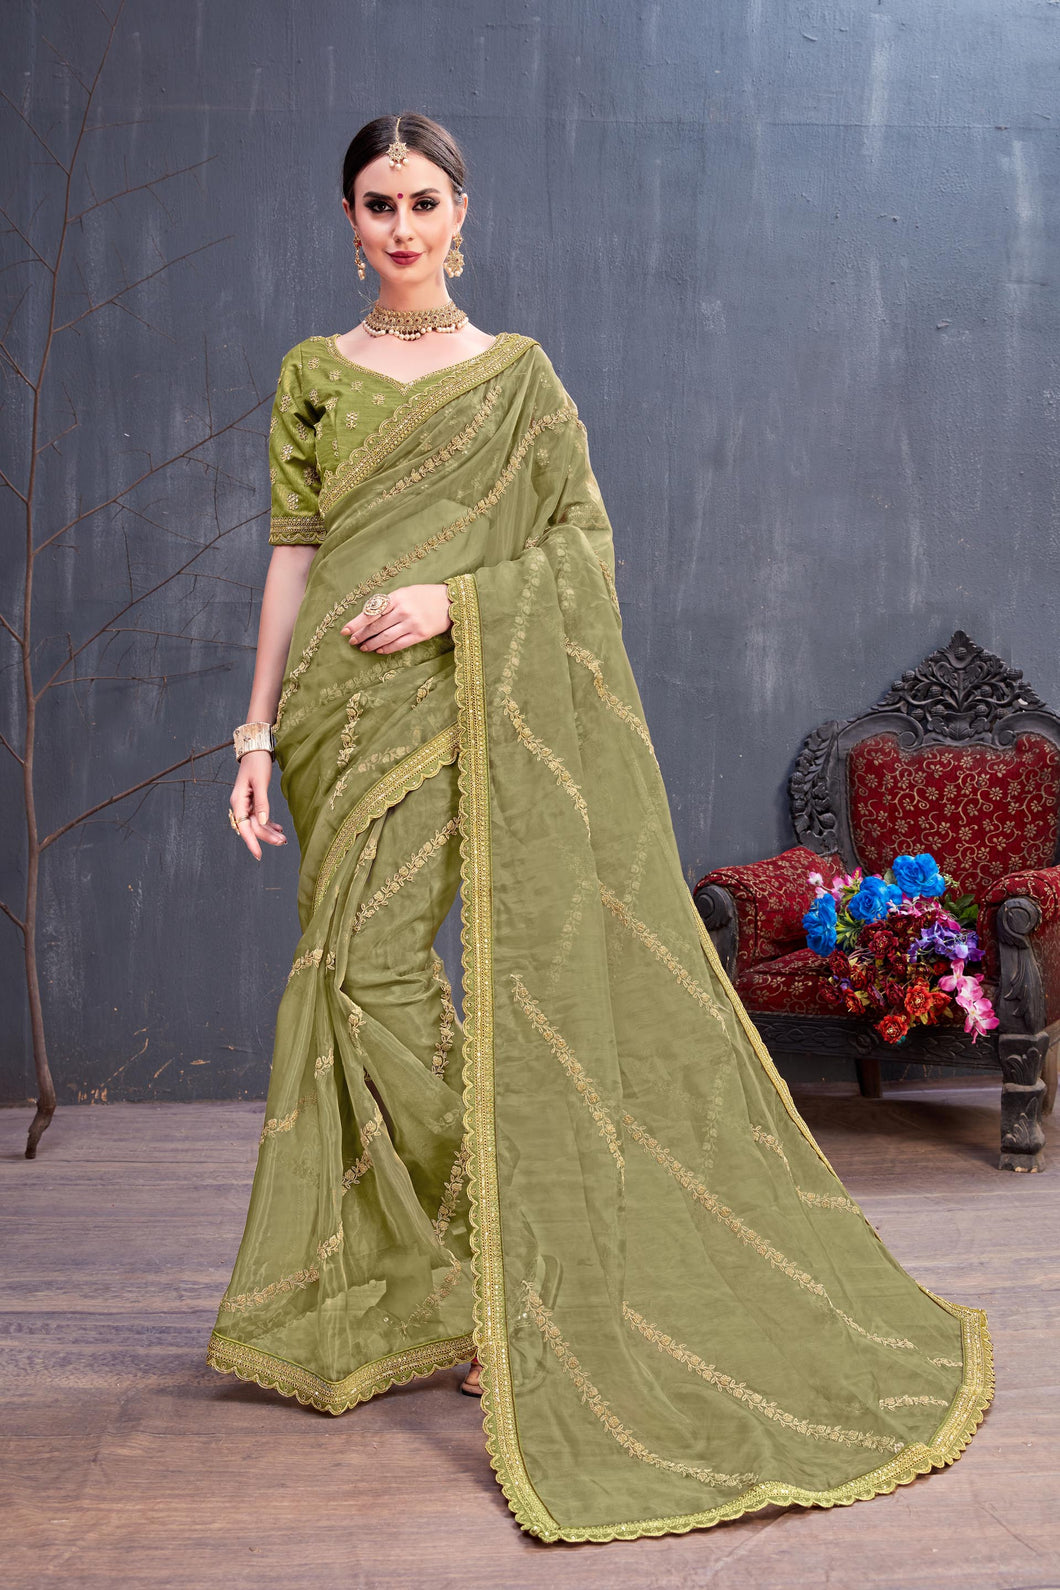 Intoxicate Nice Olive Organza Coding Sequence & Embroidered Work With Charming Saree